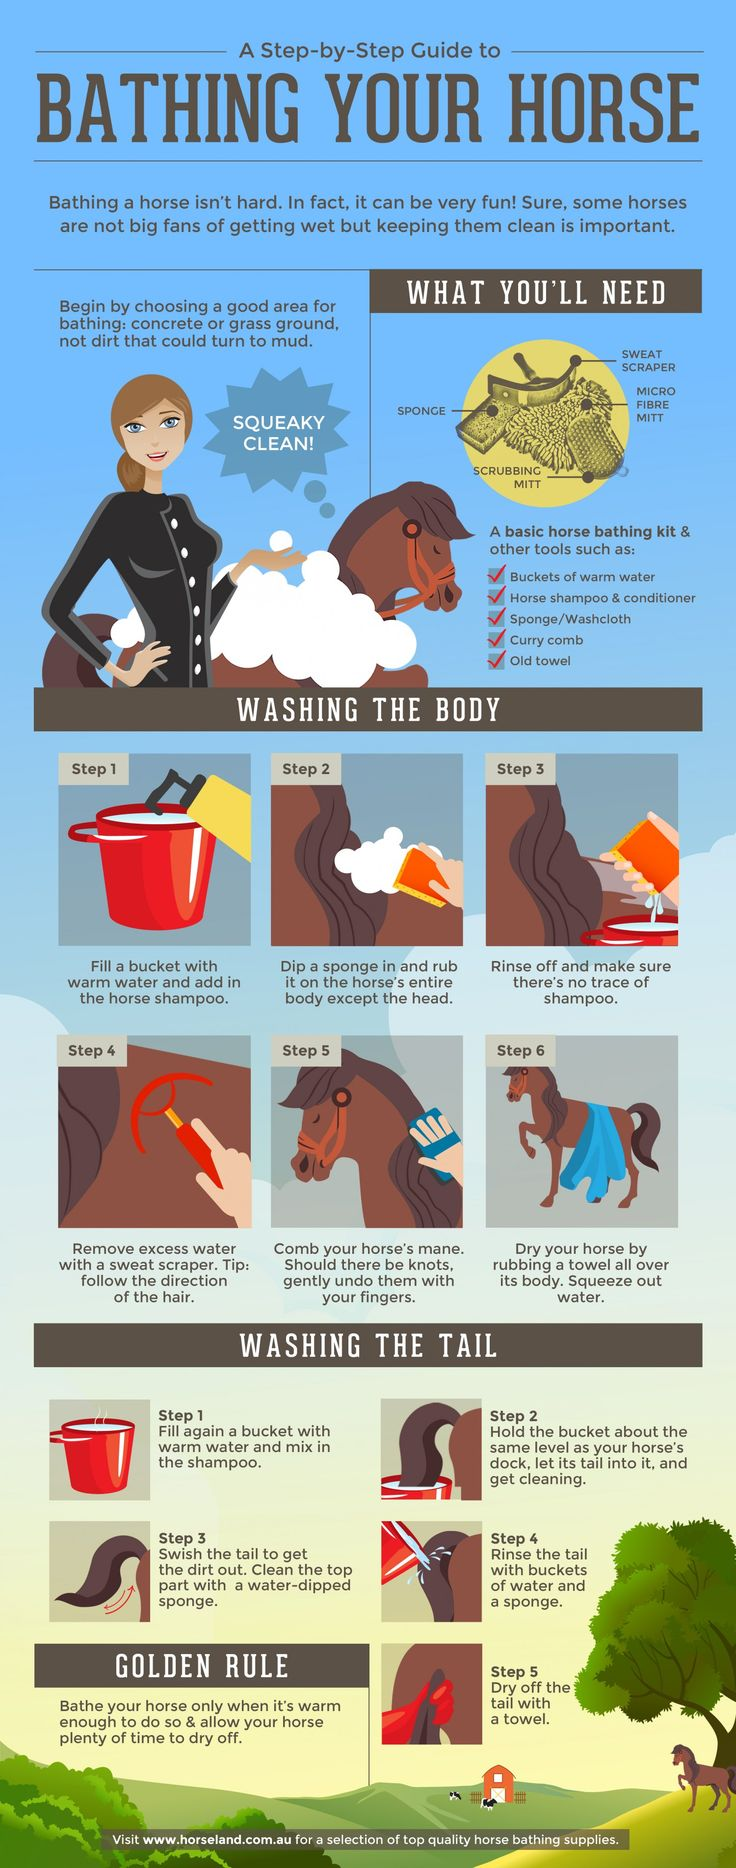 Step by step guide to bathing your horse